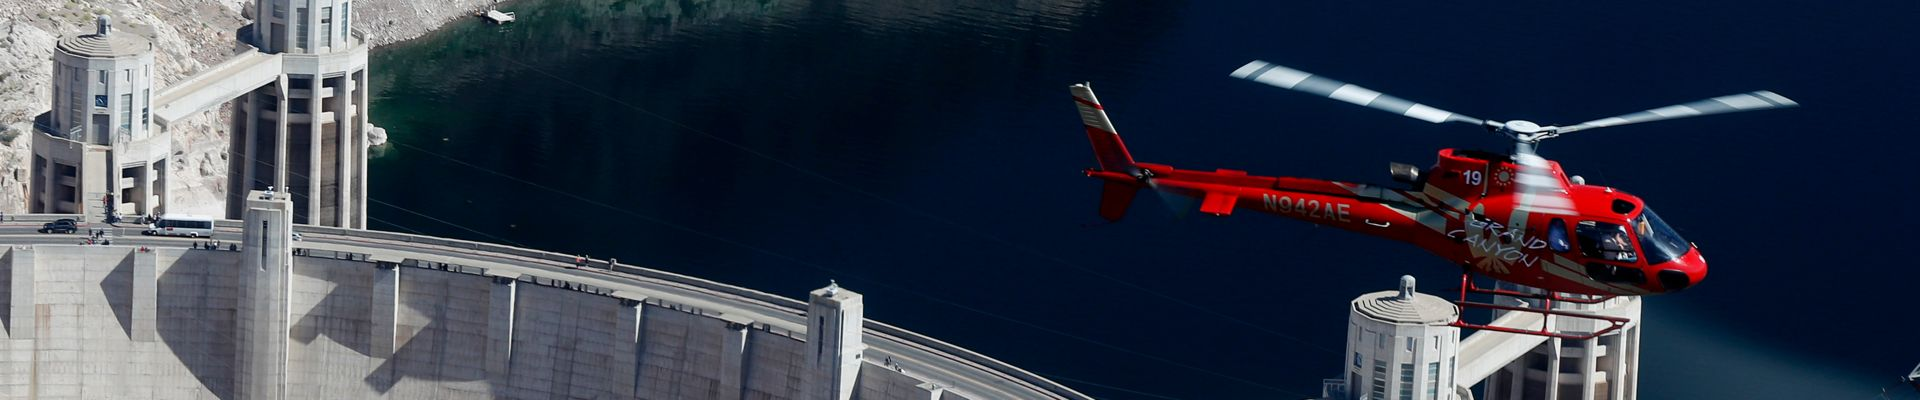 A red AStar Helicopter flying over the Hoover Dam, dark blue waters below.